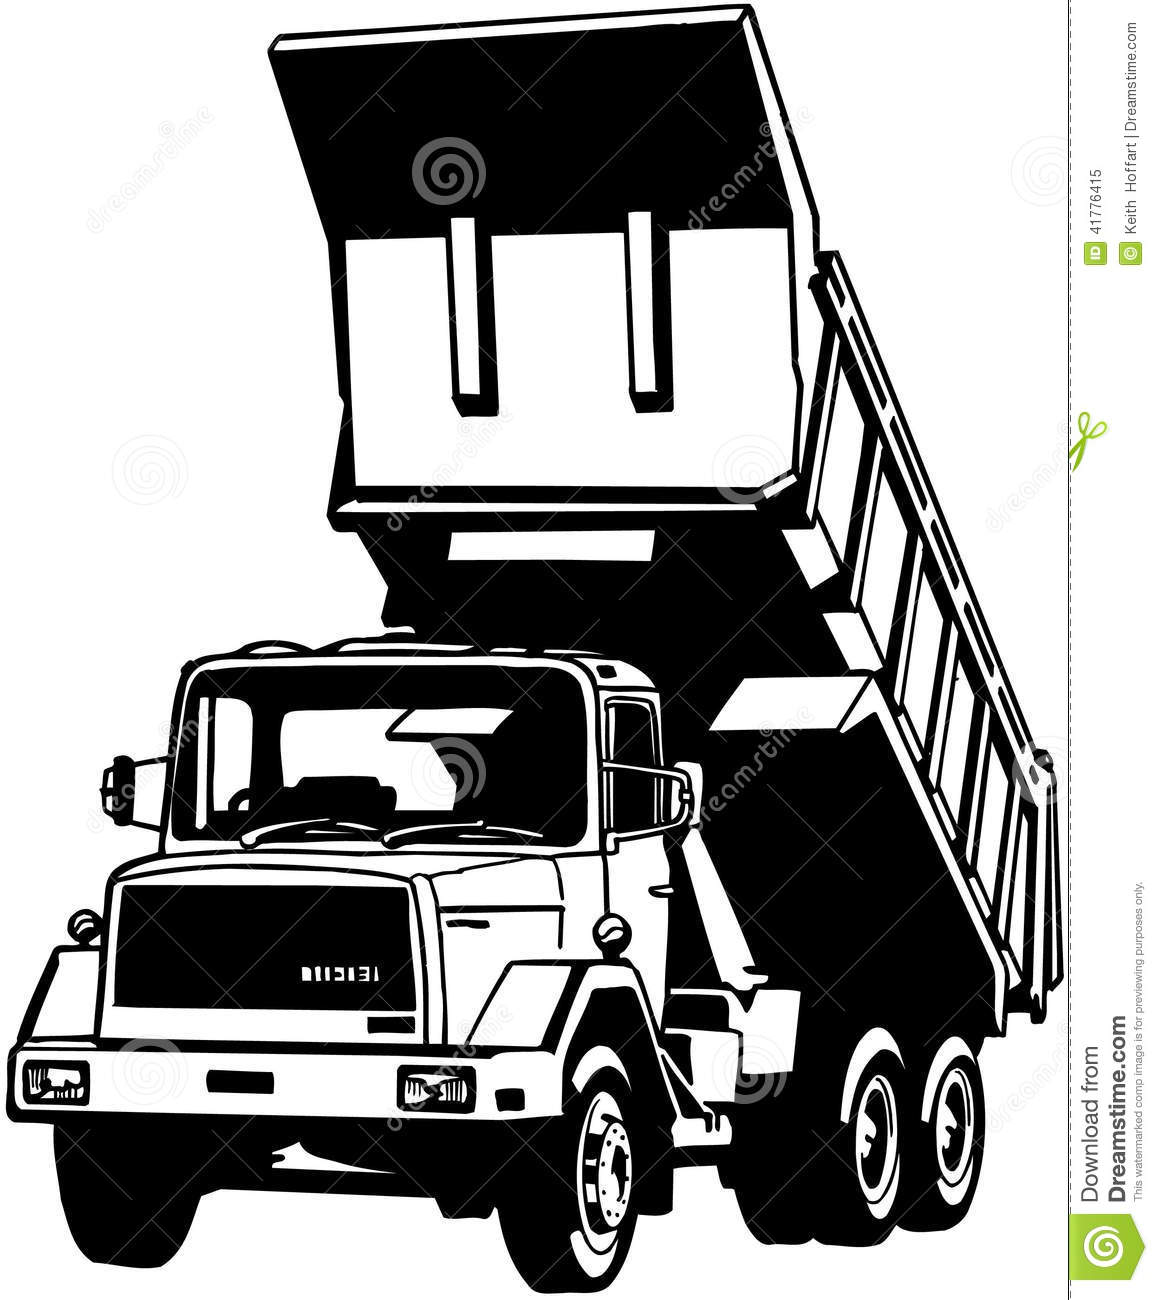 Cartoon Dump Truck Clip Art